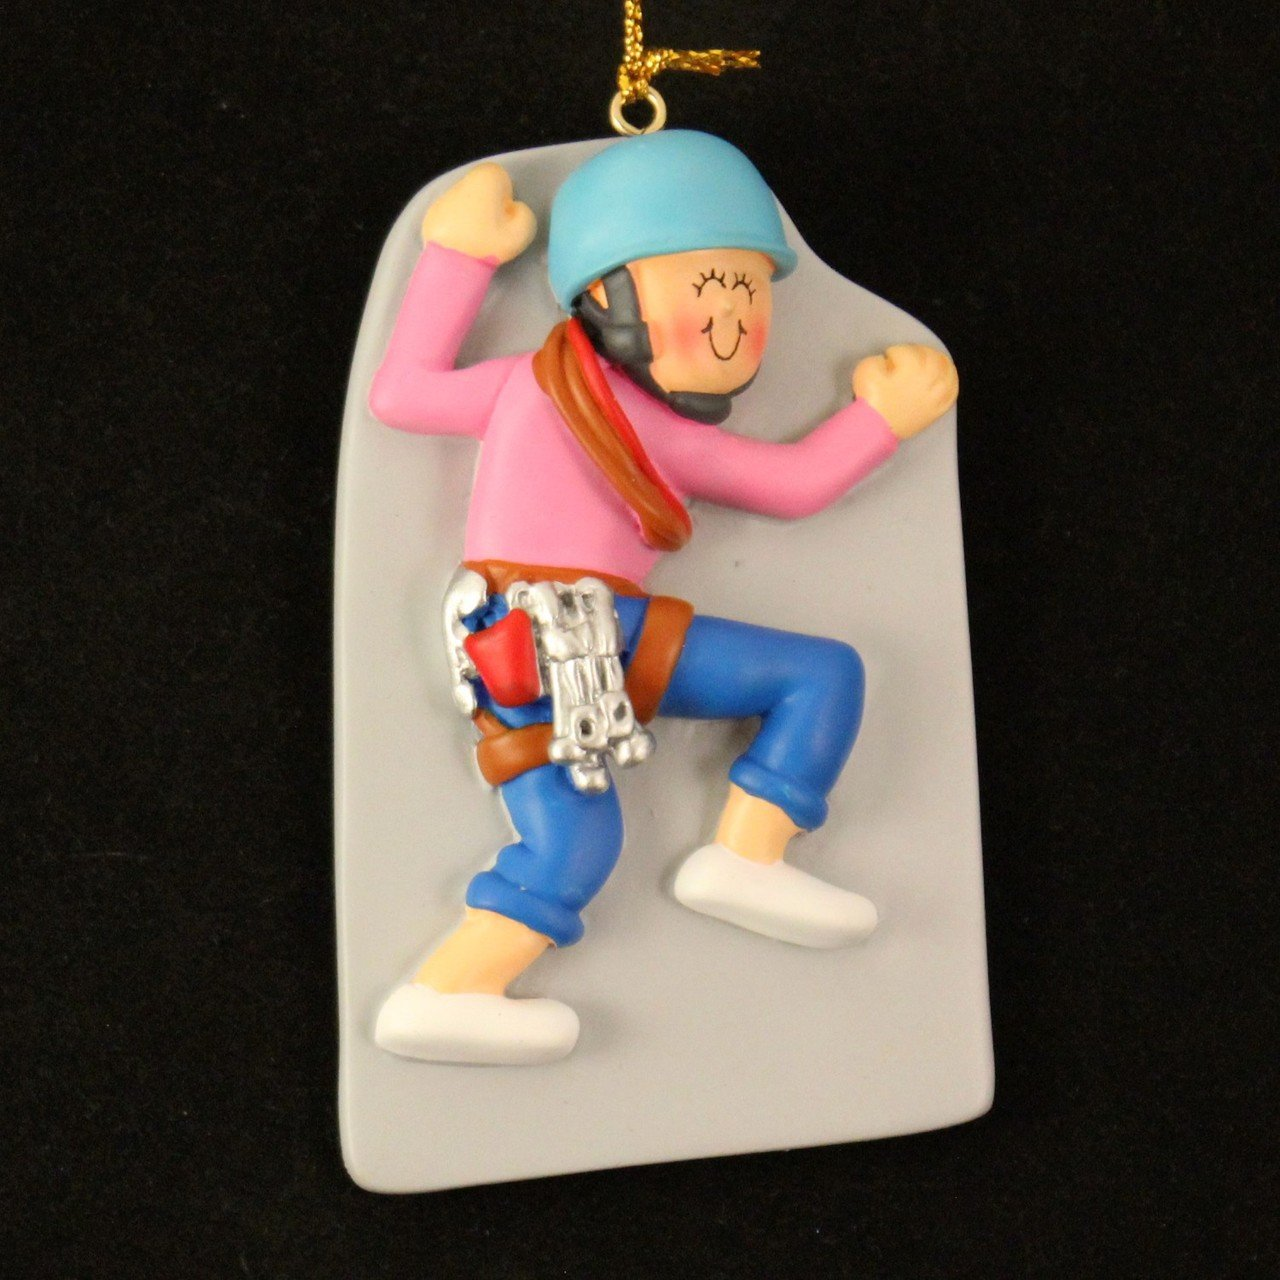 Rock climbing christmas ornaments - Female Climbing Christmas Ornament